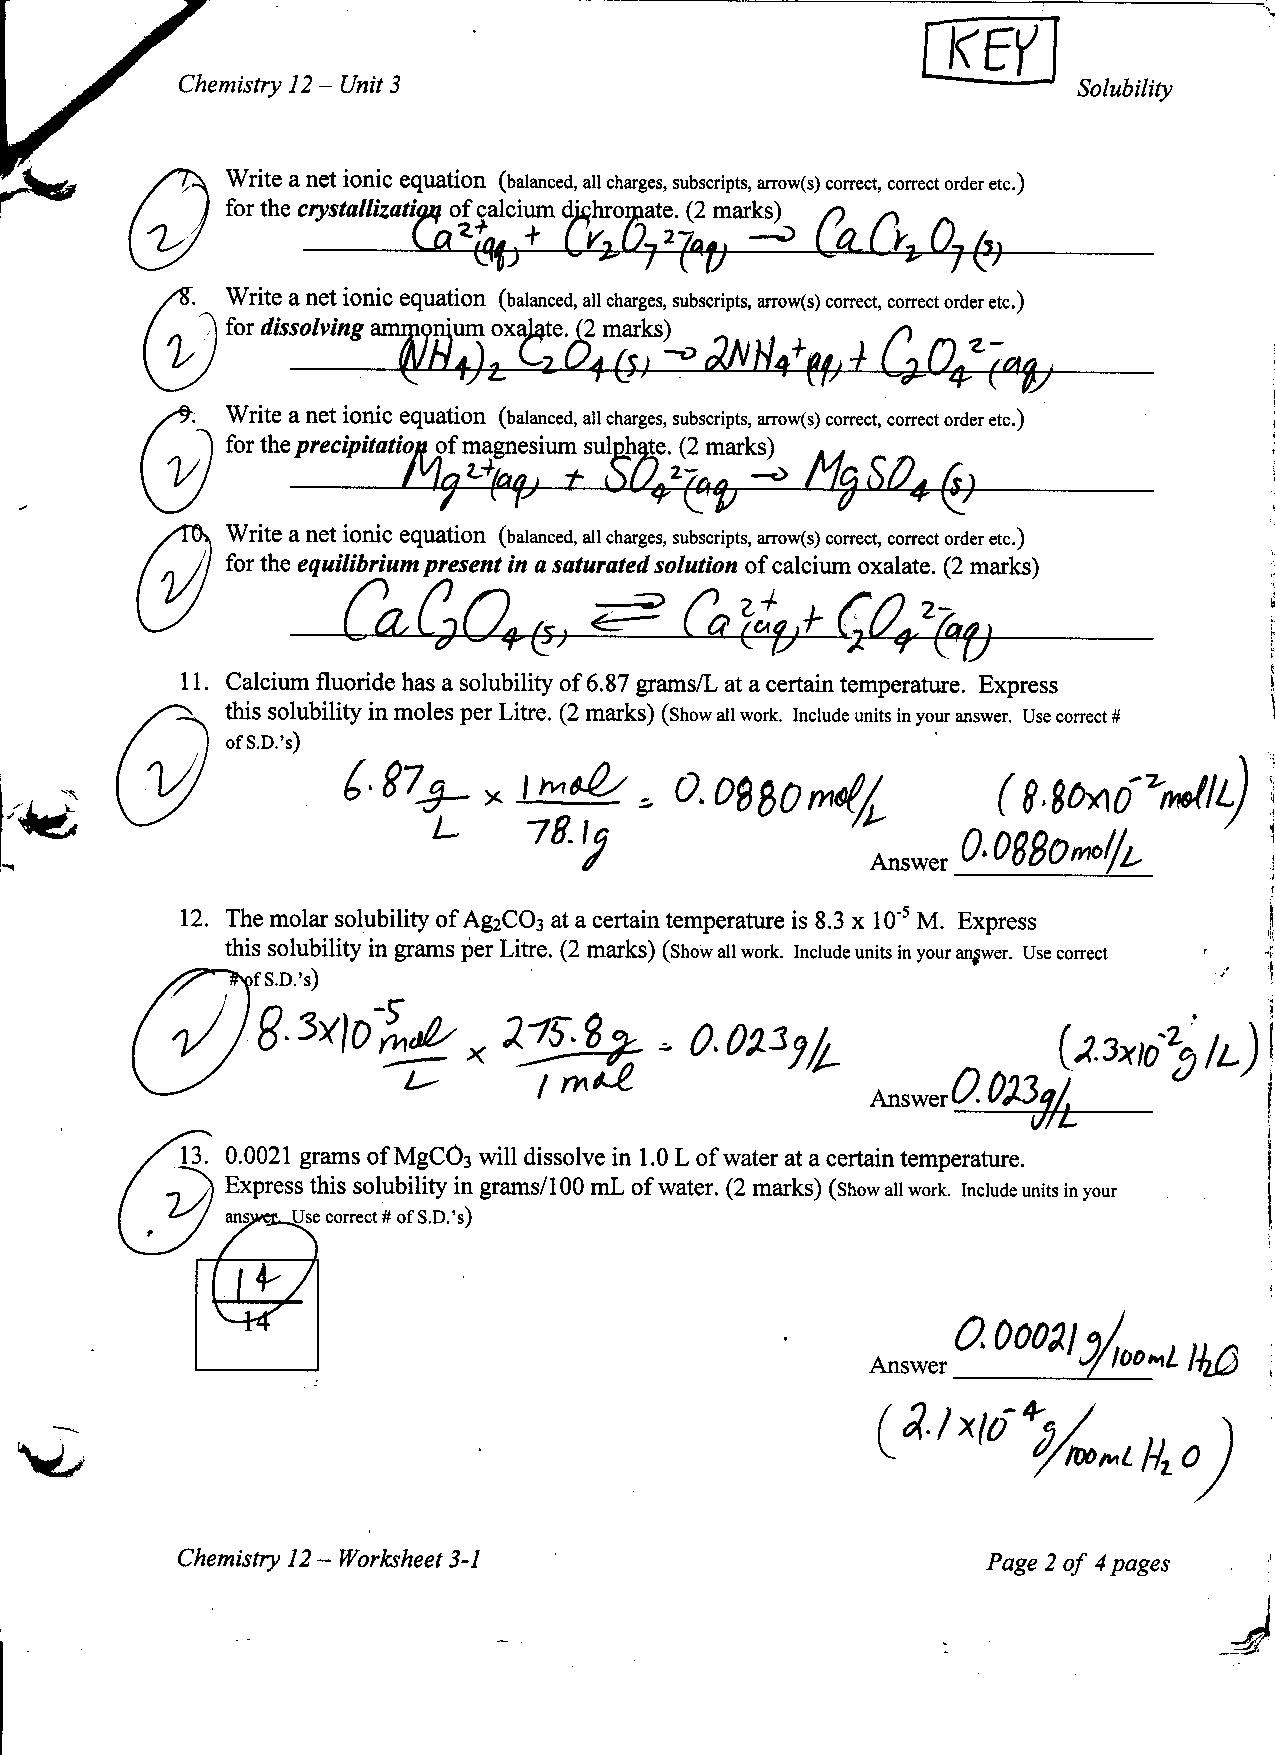 worksheet Chemistry Unit 1 Worksheet 6 Dimensional Analysis Answers chemistry 12 mr nguyens website worksheet 3 1 key page 2